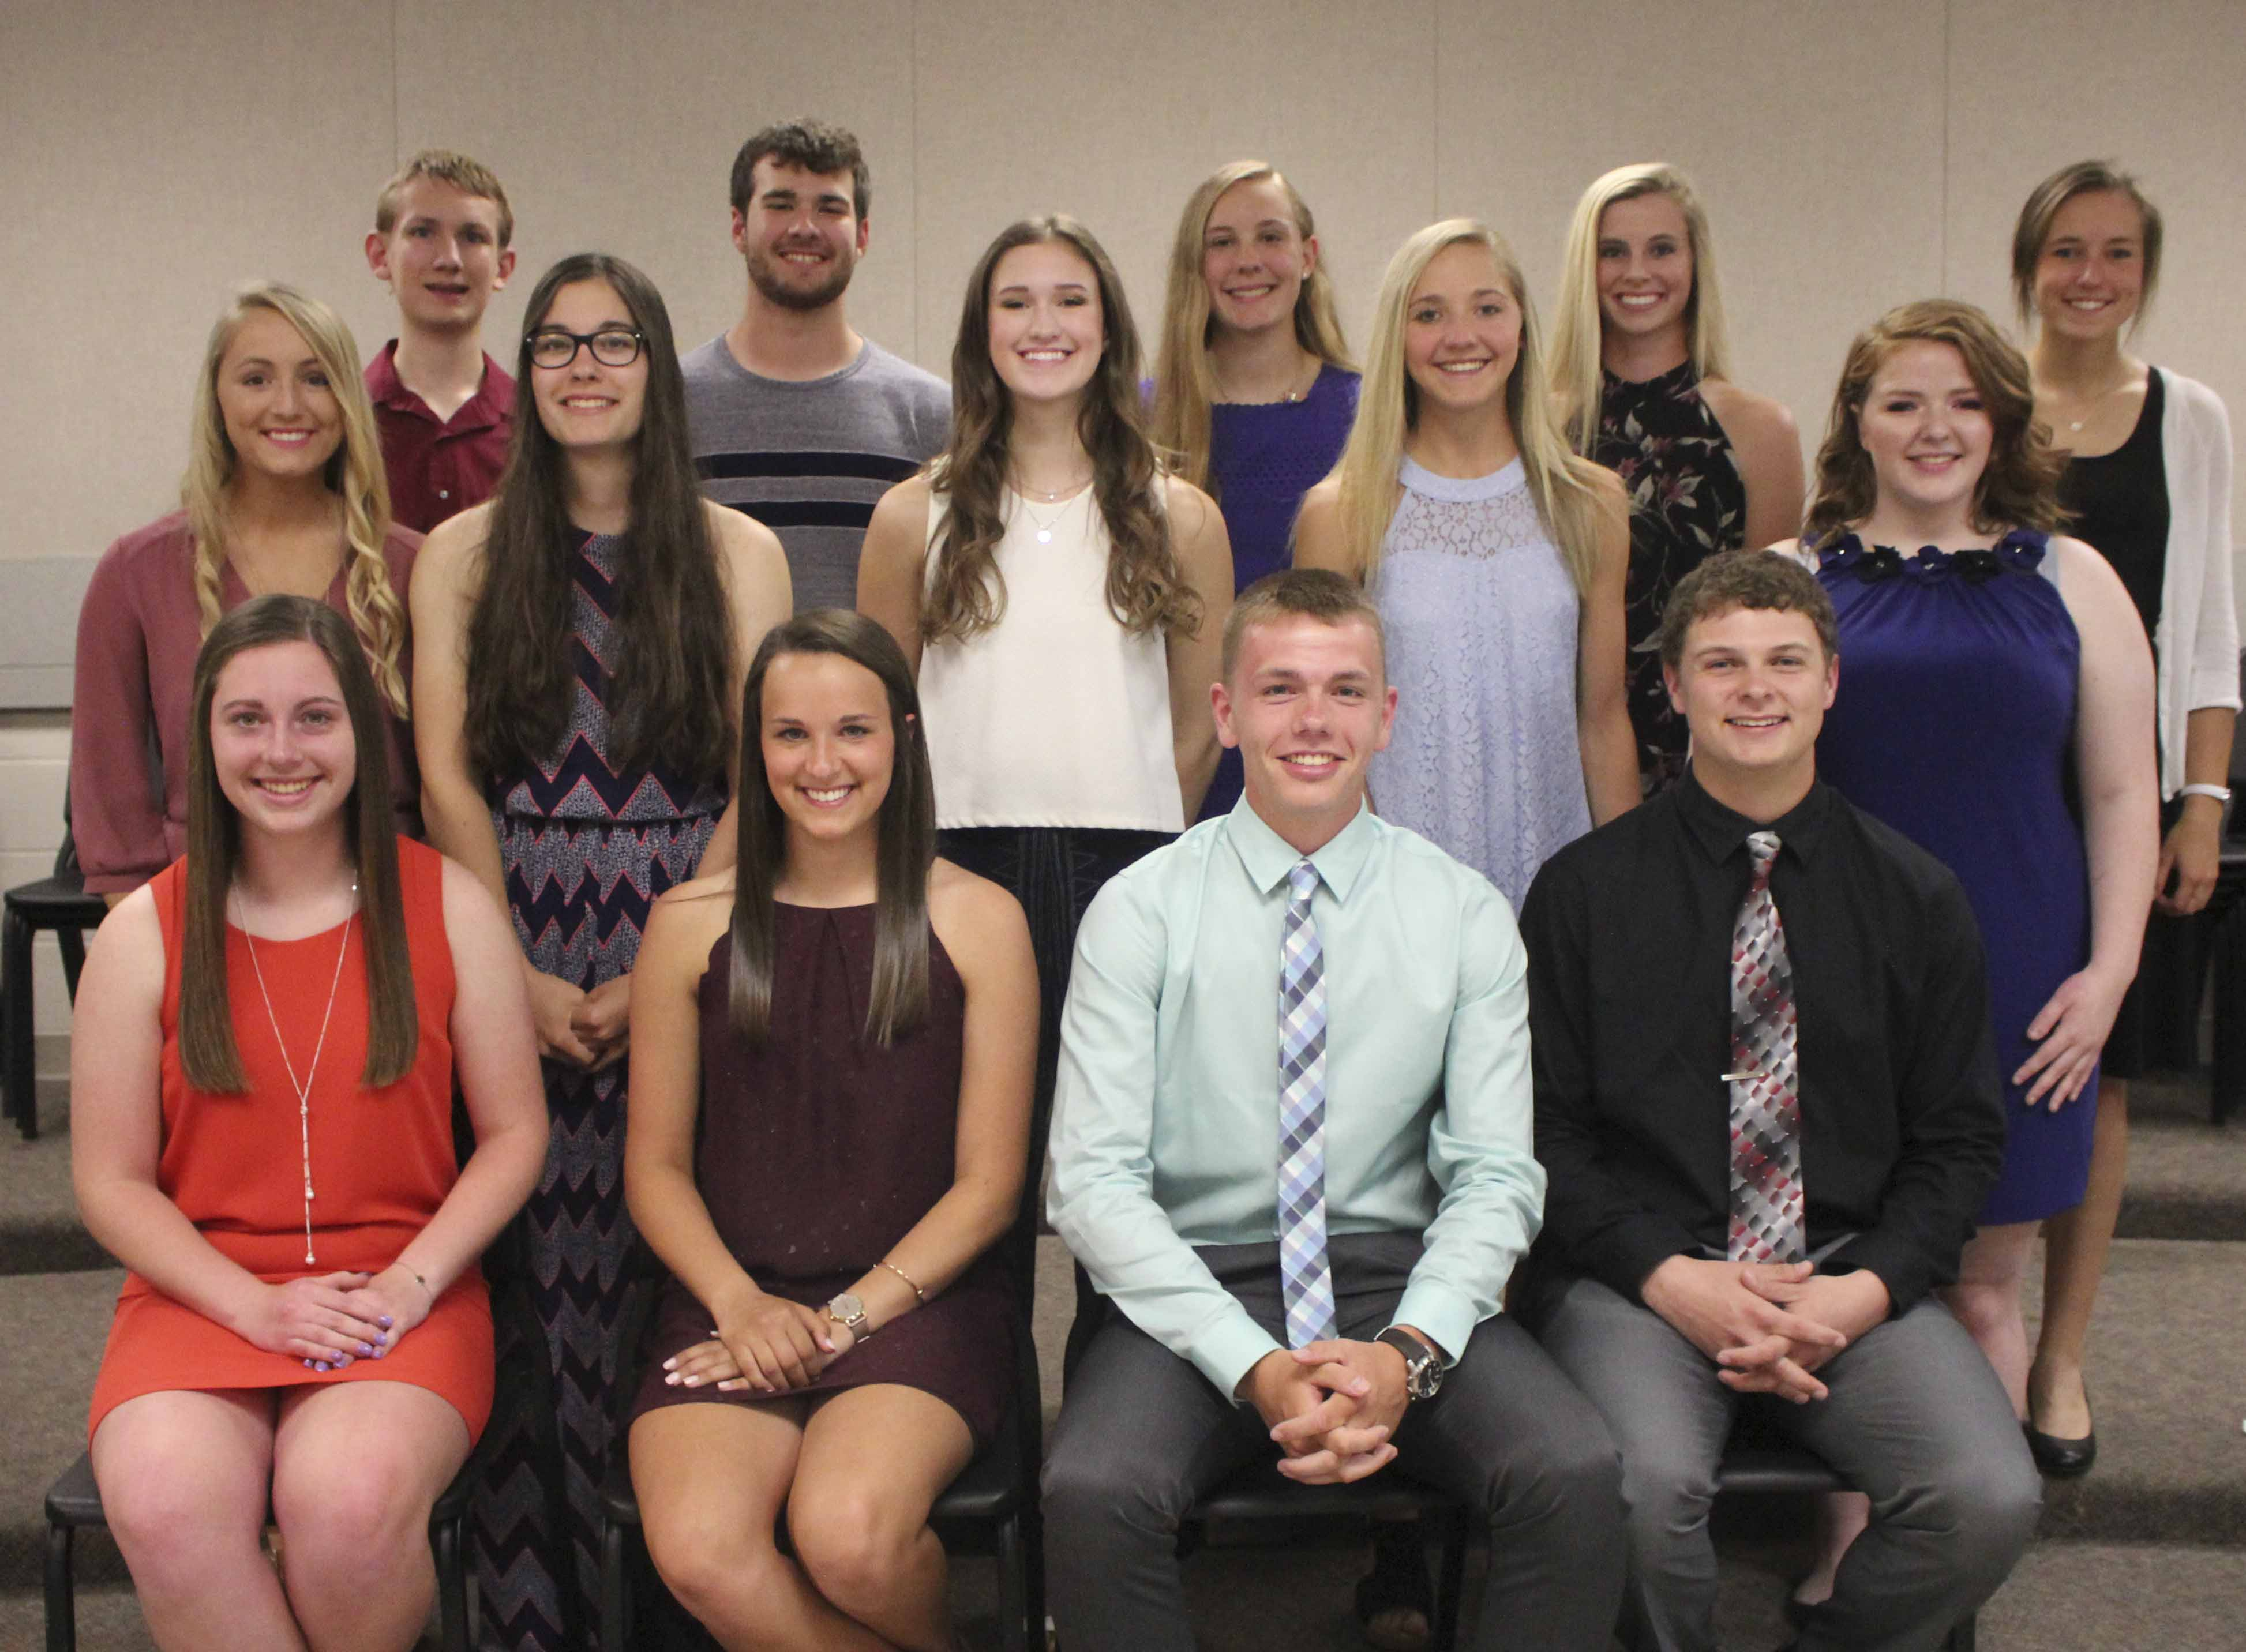 Additional active NHS members, first row from left: Meredith Melchert, Maria Recker, Kyle Sperfslage and Jacob Manternach. Second row: Macy McDonough, Anna Loes, Kate Tuetken, Taylor McDonald and Kiley Wall. Third row: Ryan Oswald, Ryan Manternach, Rachel Larabee, Lauren Ries and Jordyn Patterson.